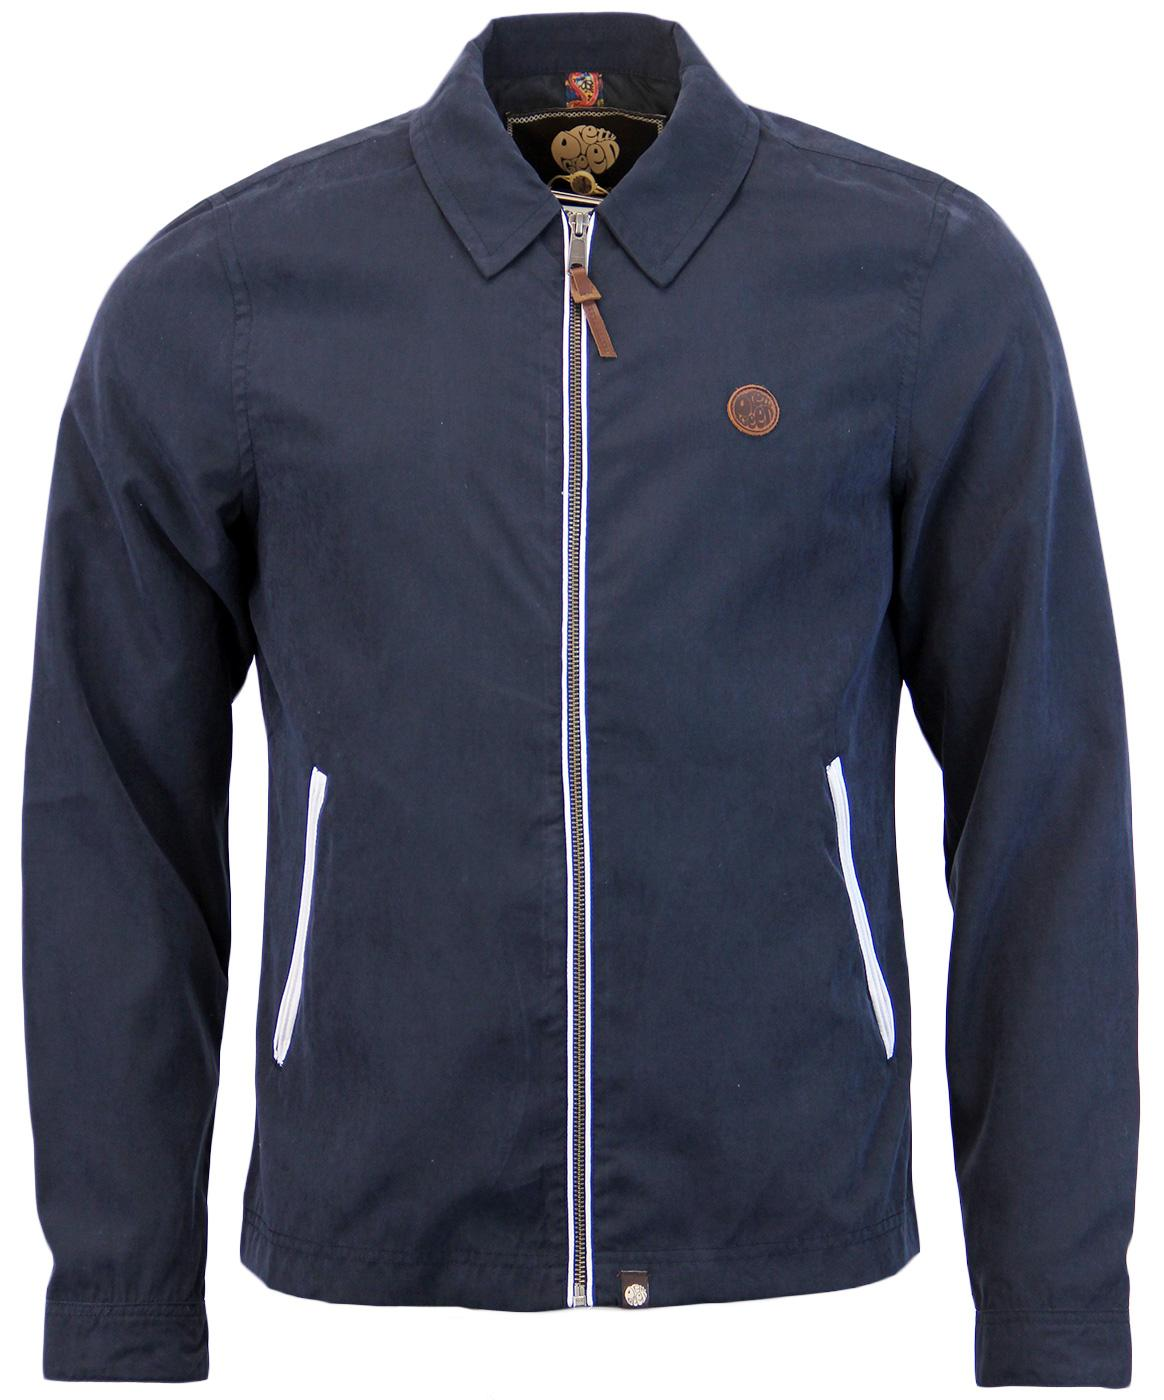 Crestwood PRETTY GREEN Retro Light Weight Jacket